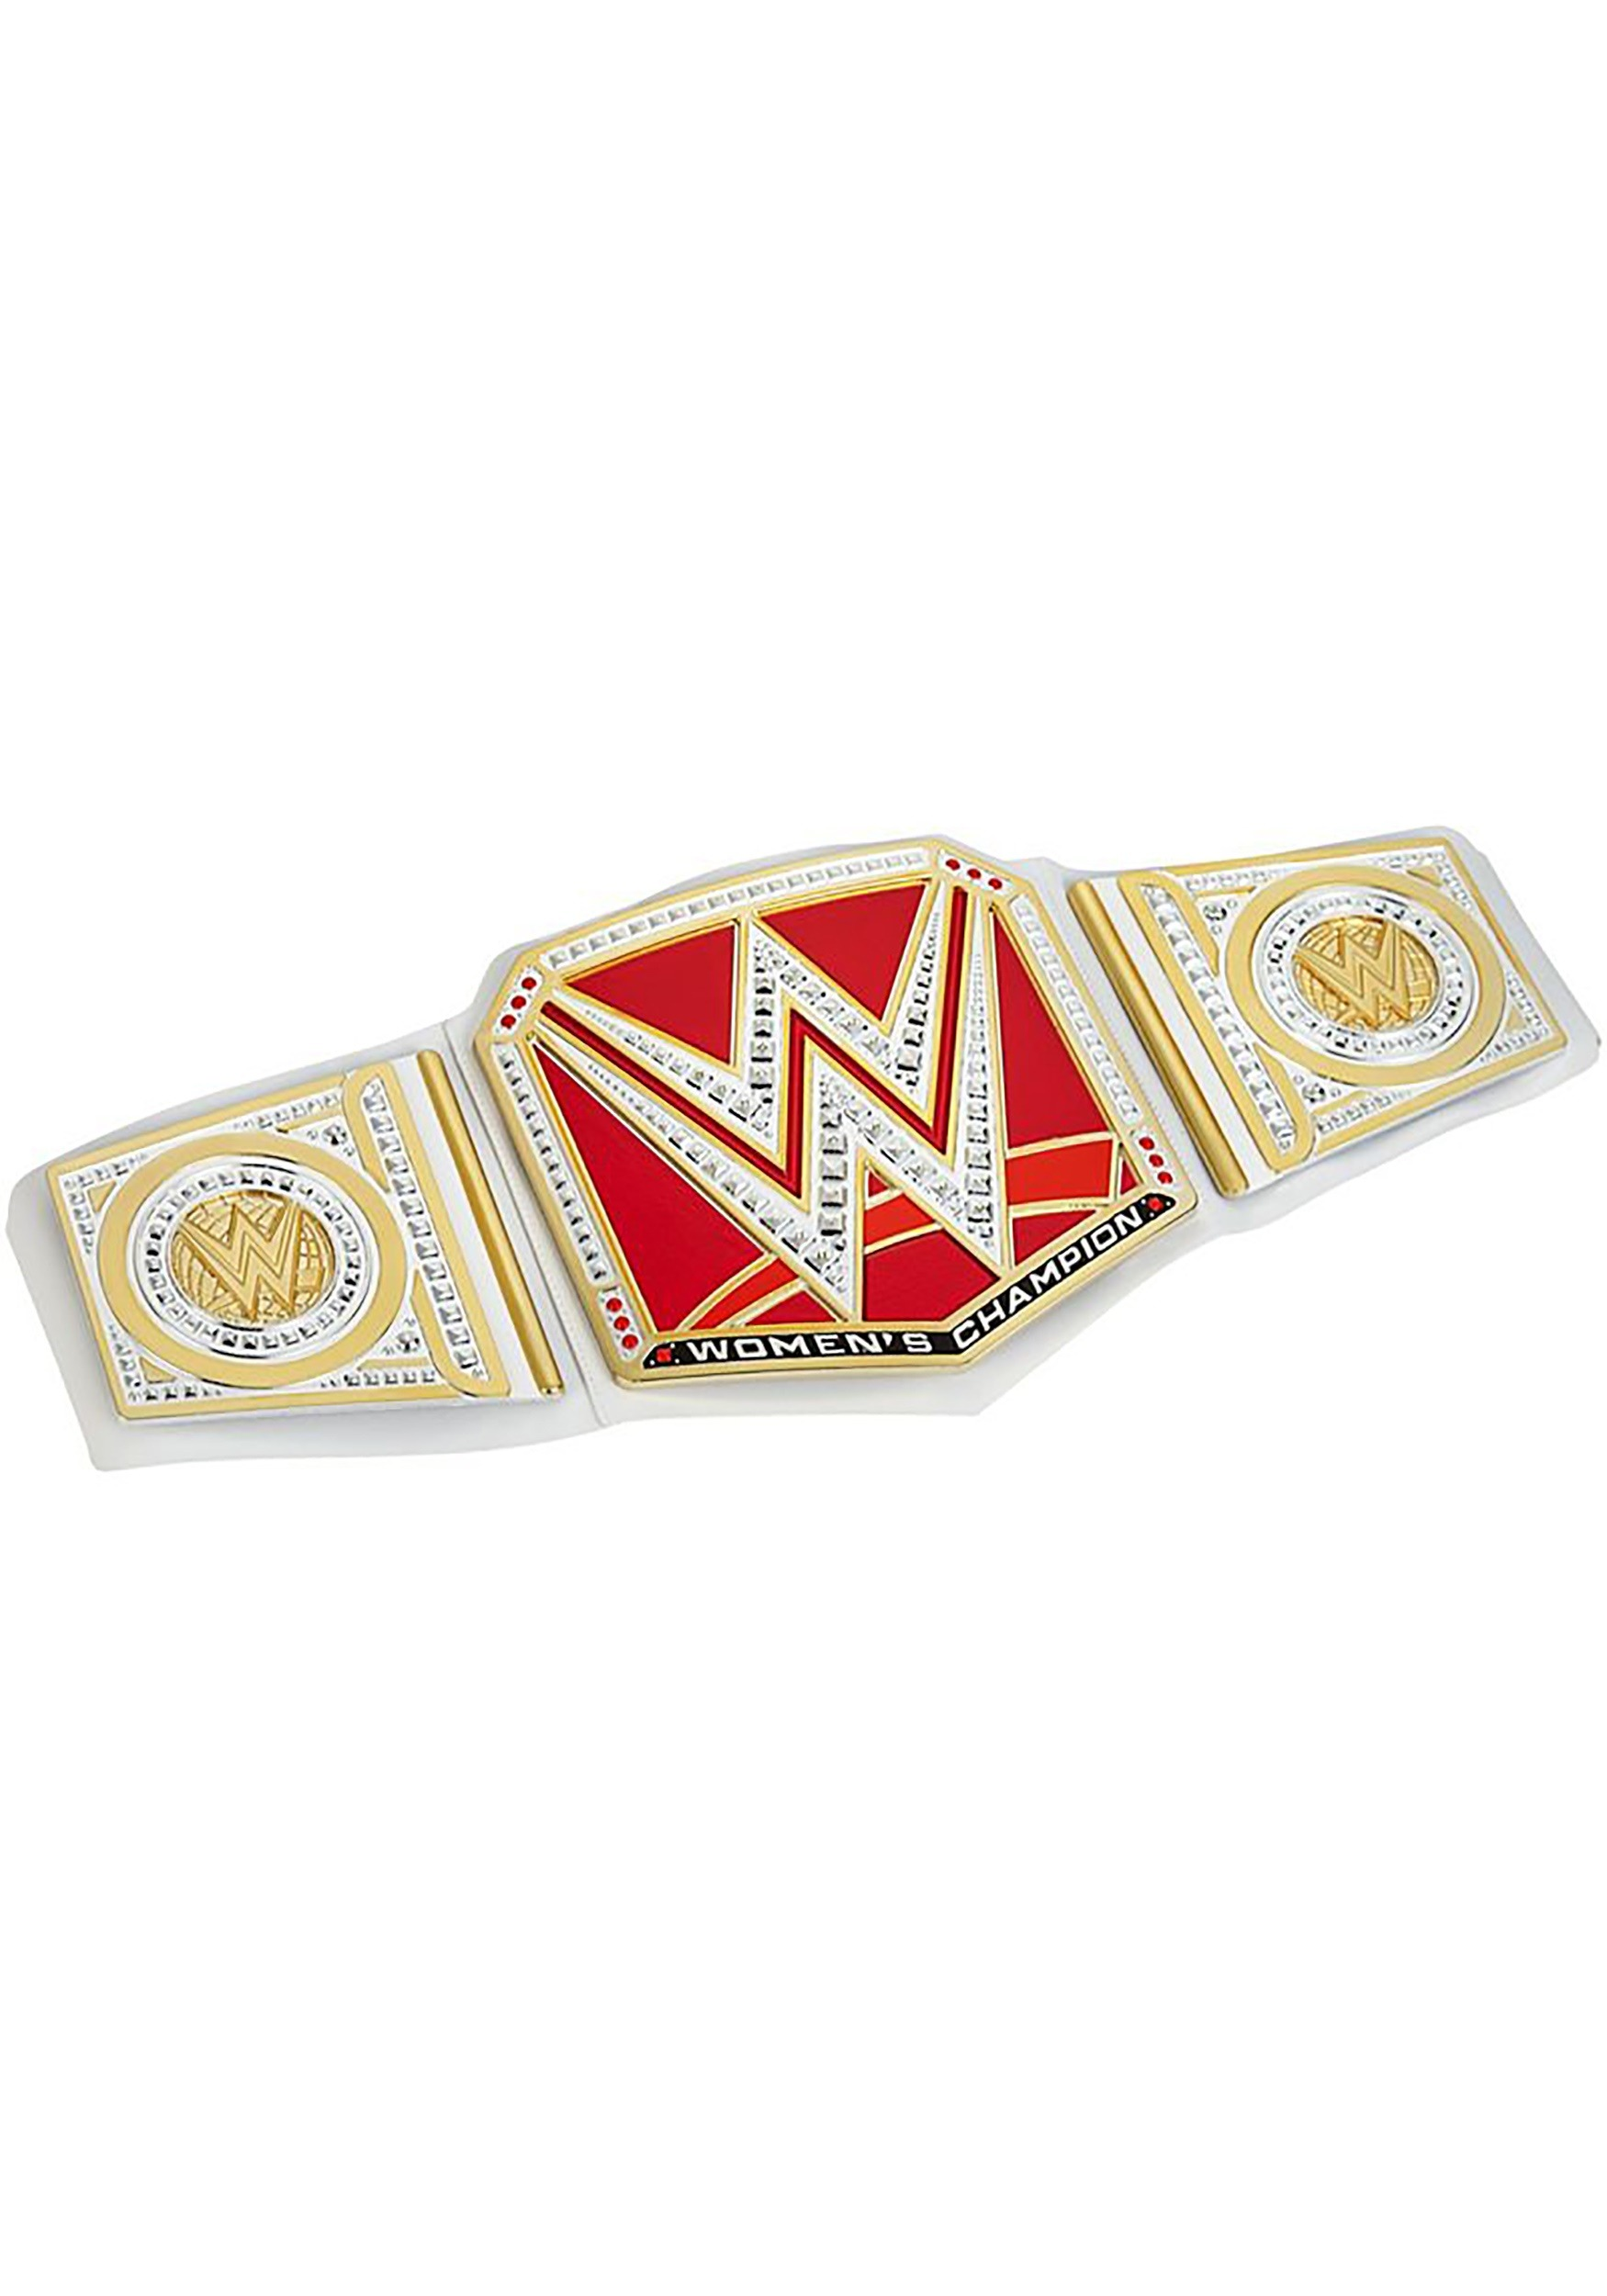 World Wrestling Championship Belt Costume Accessory Gold One Size Fits Most